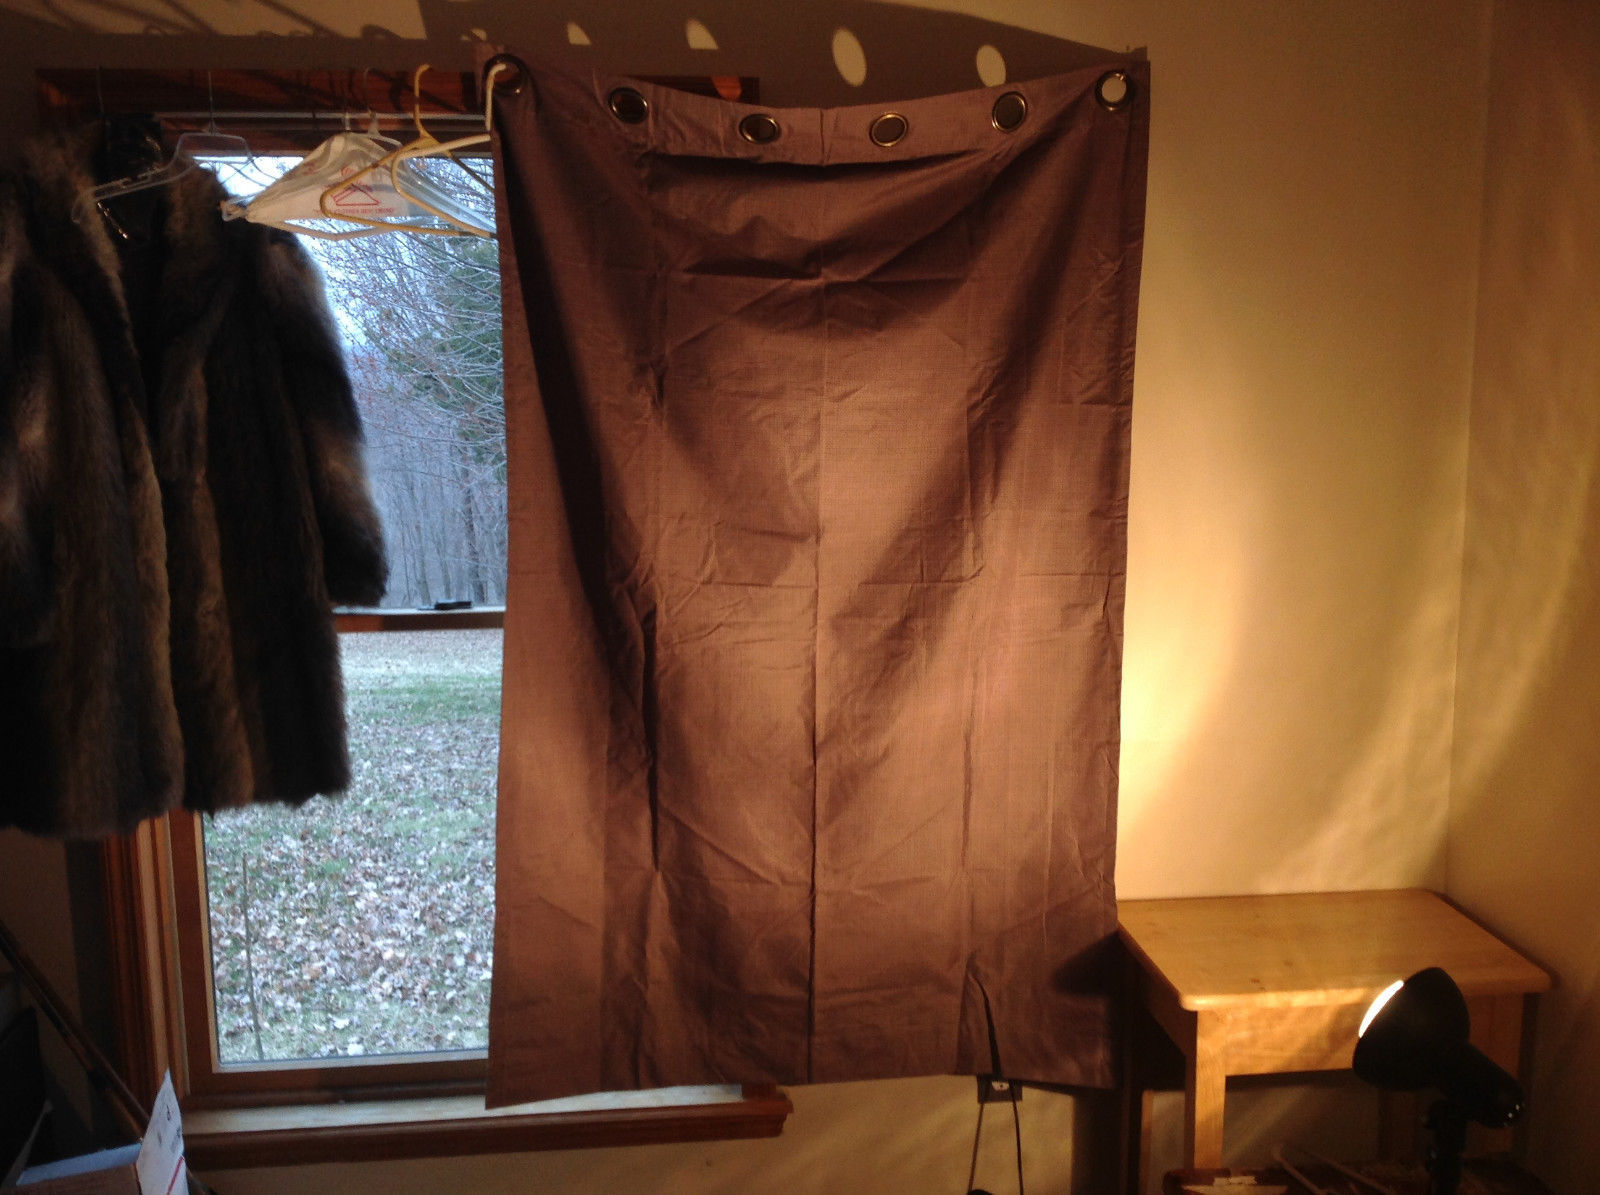 Brown Curtain Metal Rings for Hanging on Curtain Rod  64 Inches by 42 Inches